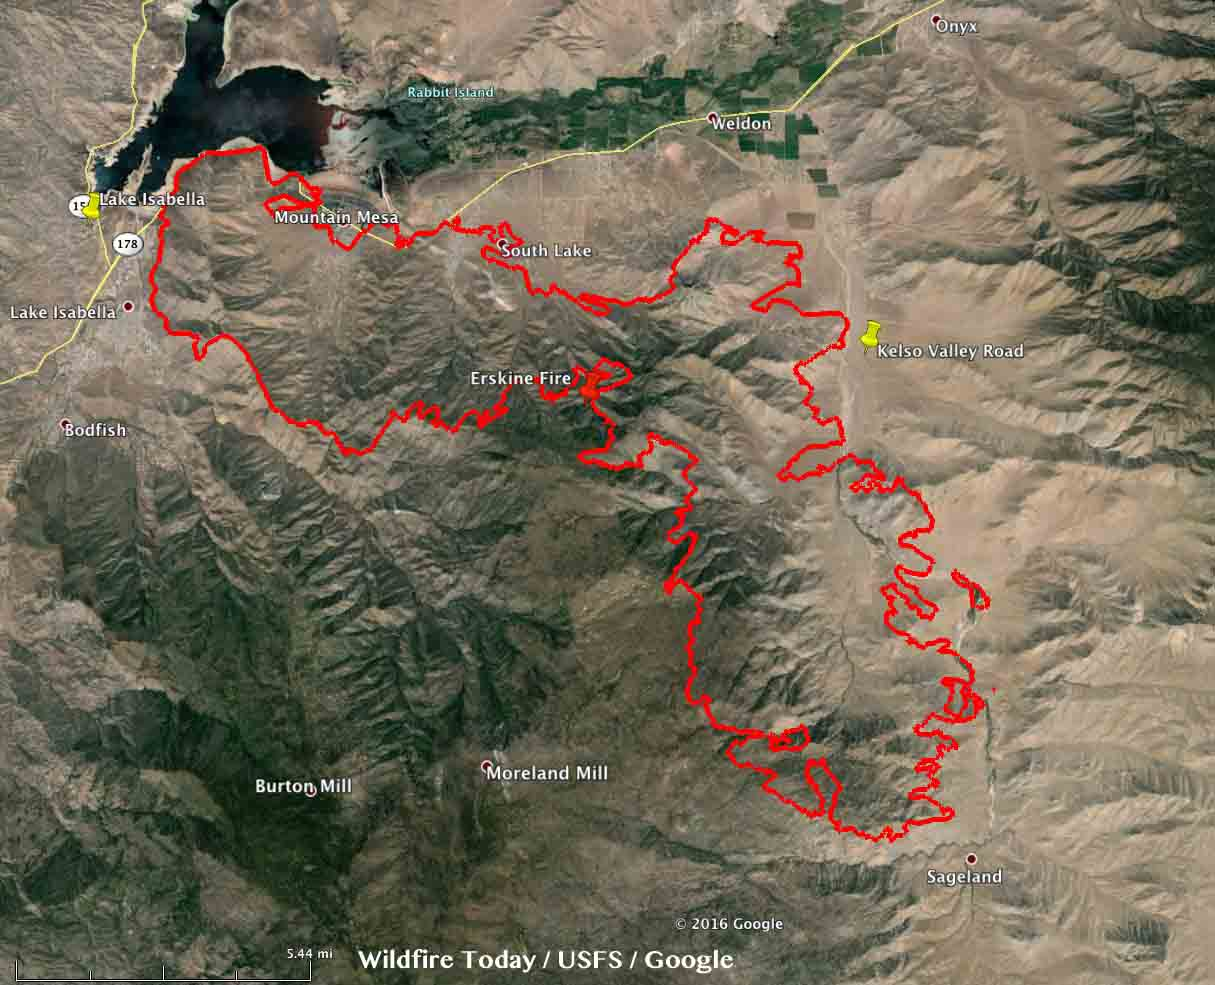 Lake Isabella Fire Map.Map Erskine Fire 9 Pm Pdt June 24 2016 Wildfire Today